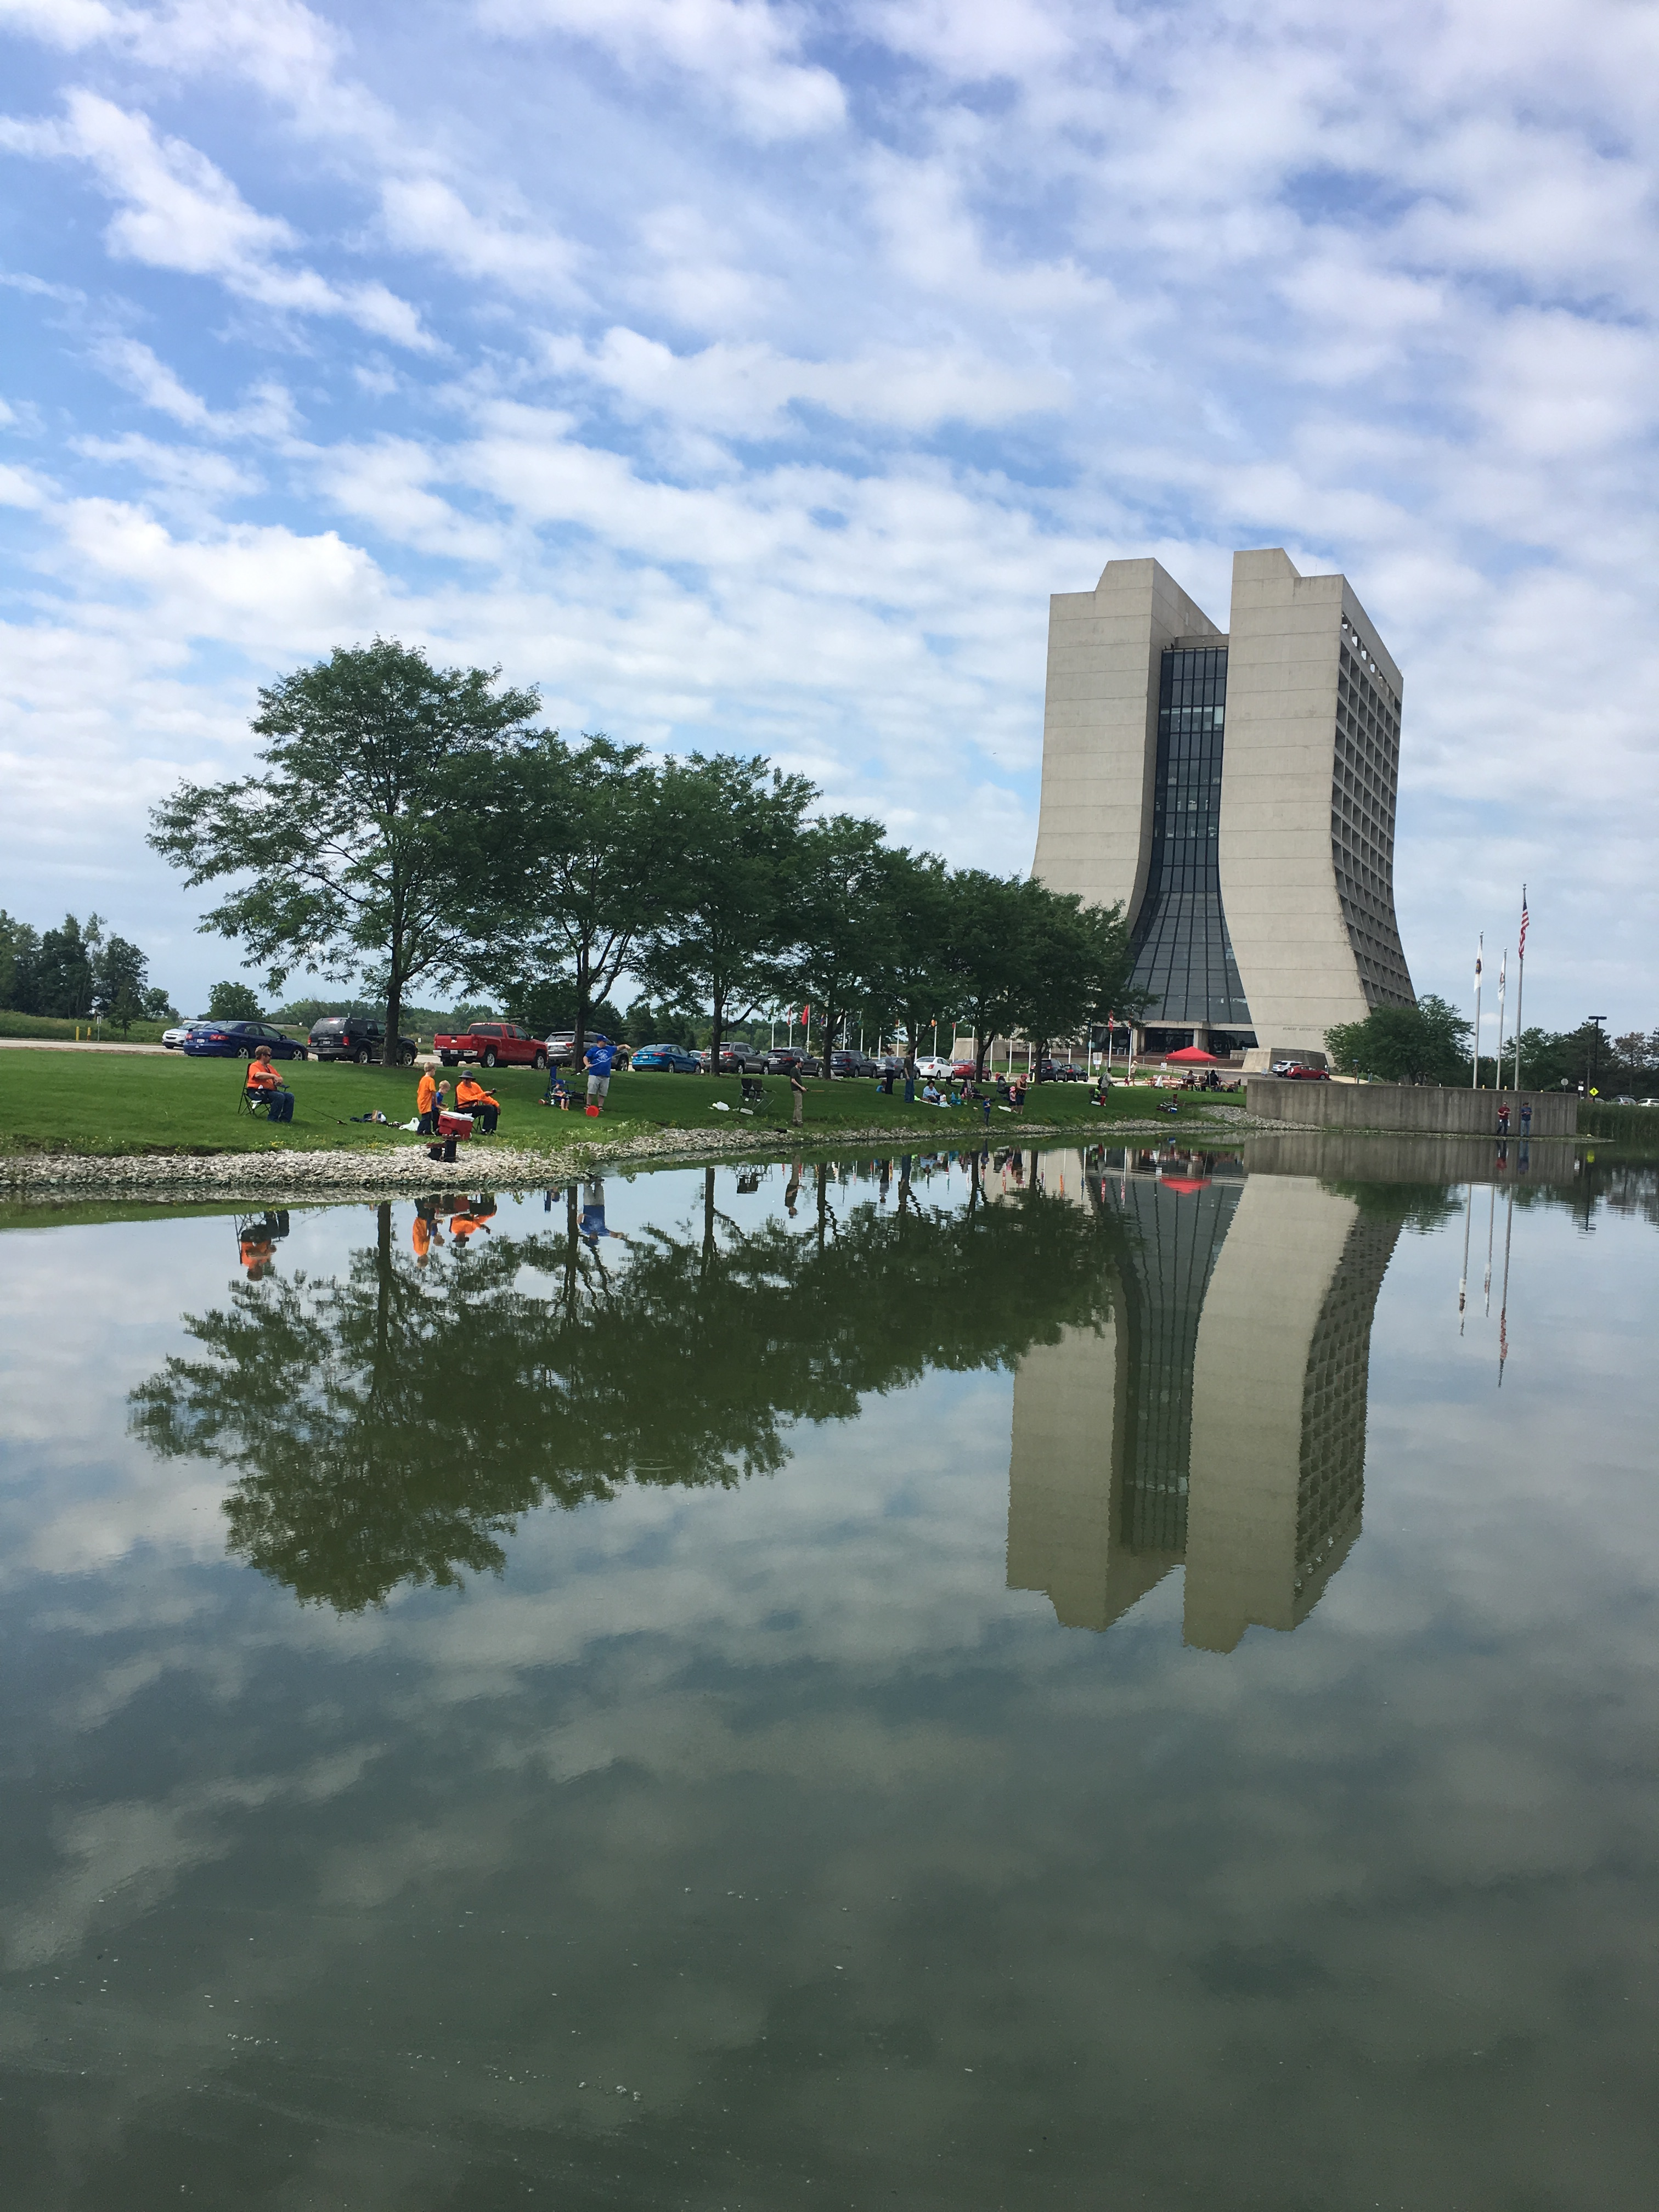 It's a reflective day at the Fermilab Fishing Derby. Photo: Jessica Jensen